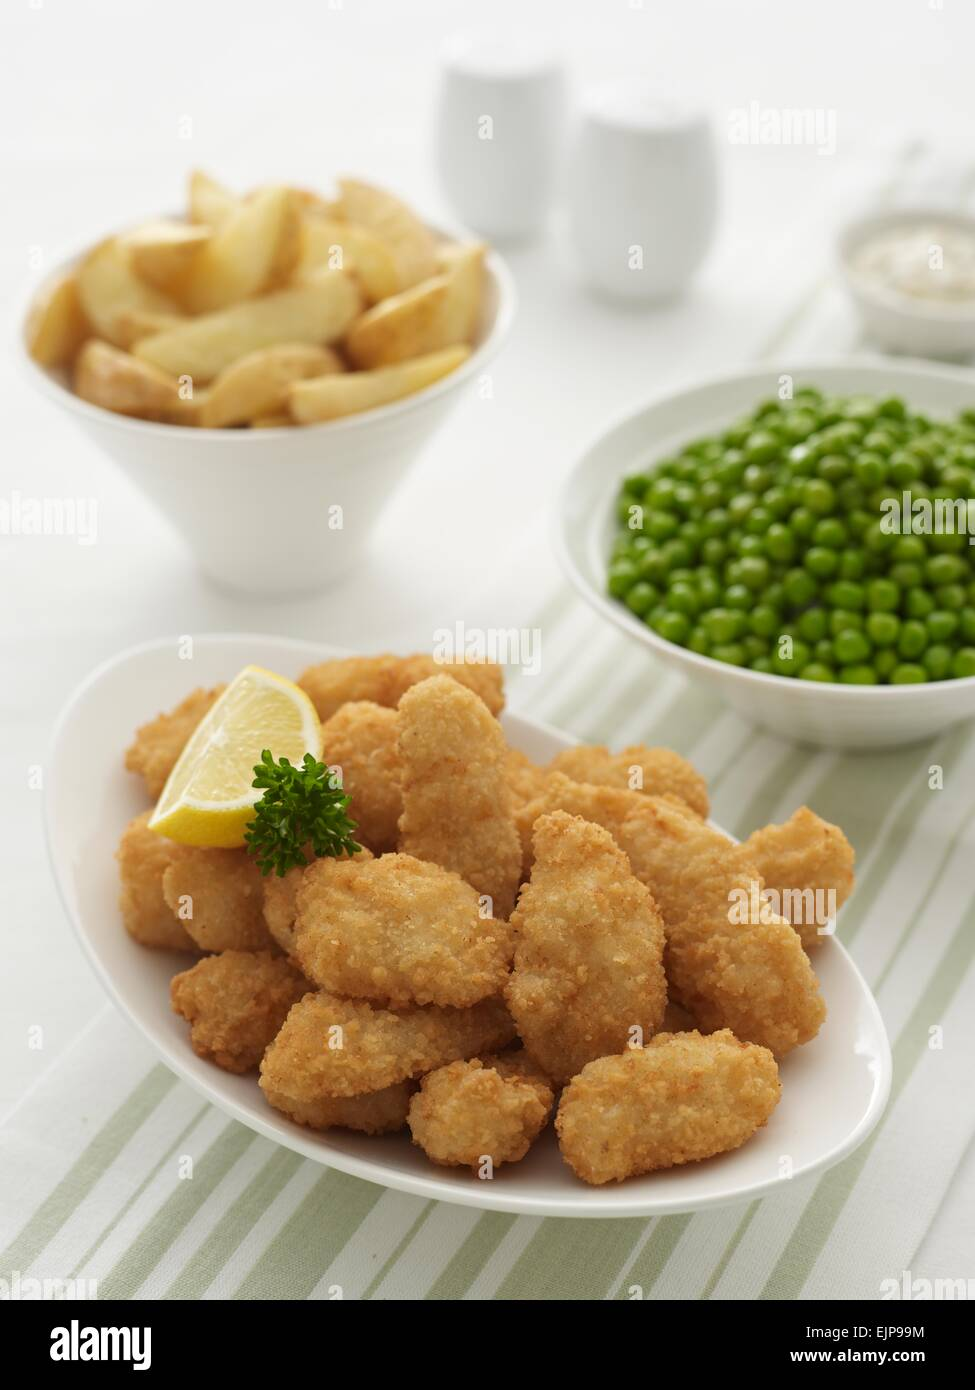 breaded fish goujons, lemon and parsley in a bowl plus bowls of skin on chips,rustic style, garden peas, ramekin - Stock Image